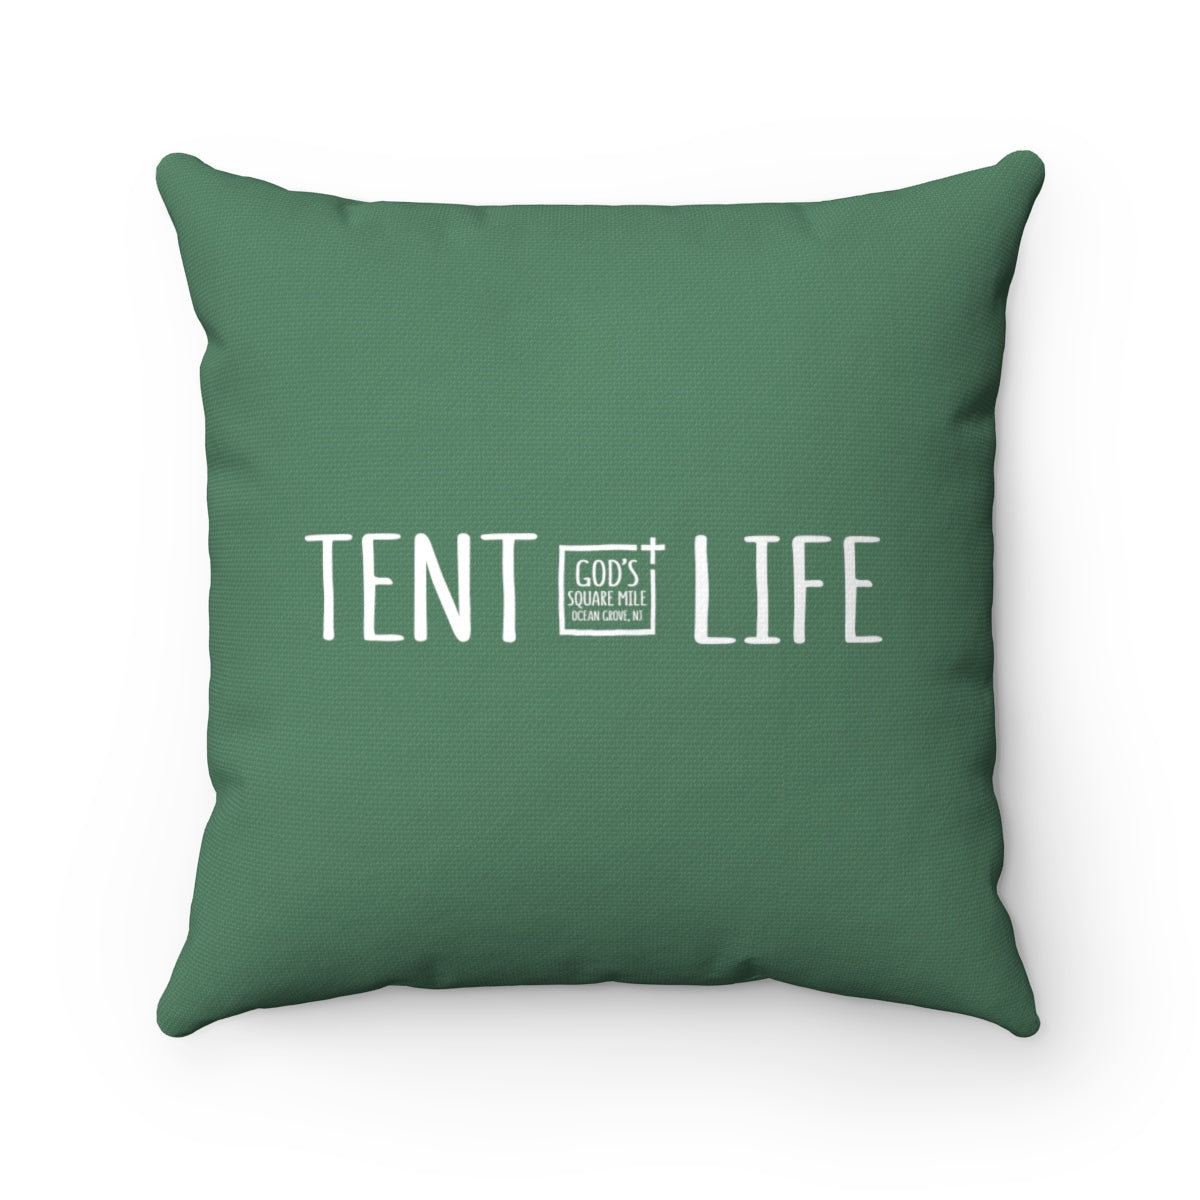 Tent Life Pillow: Faded Green